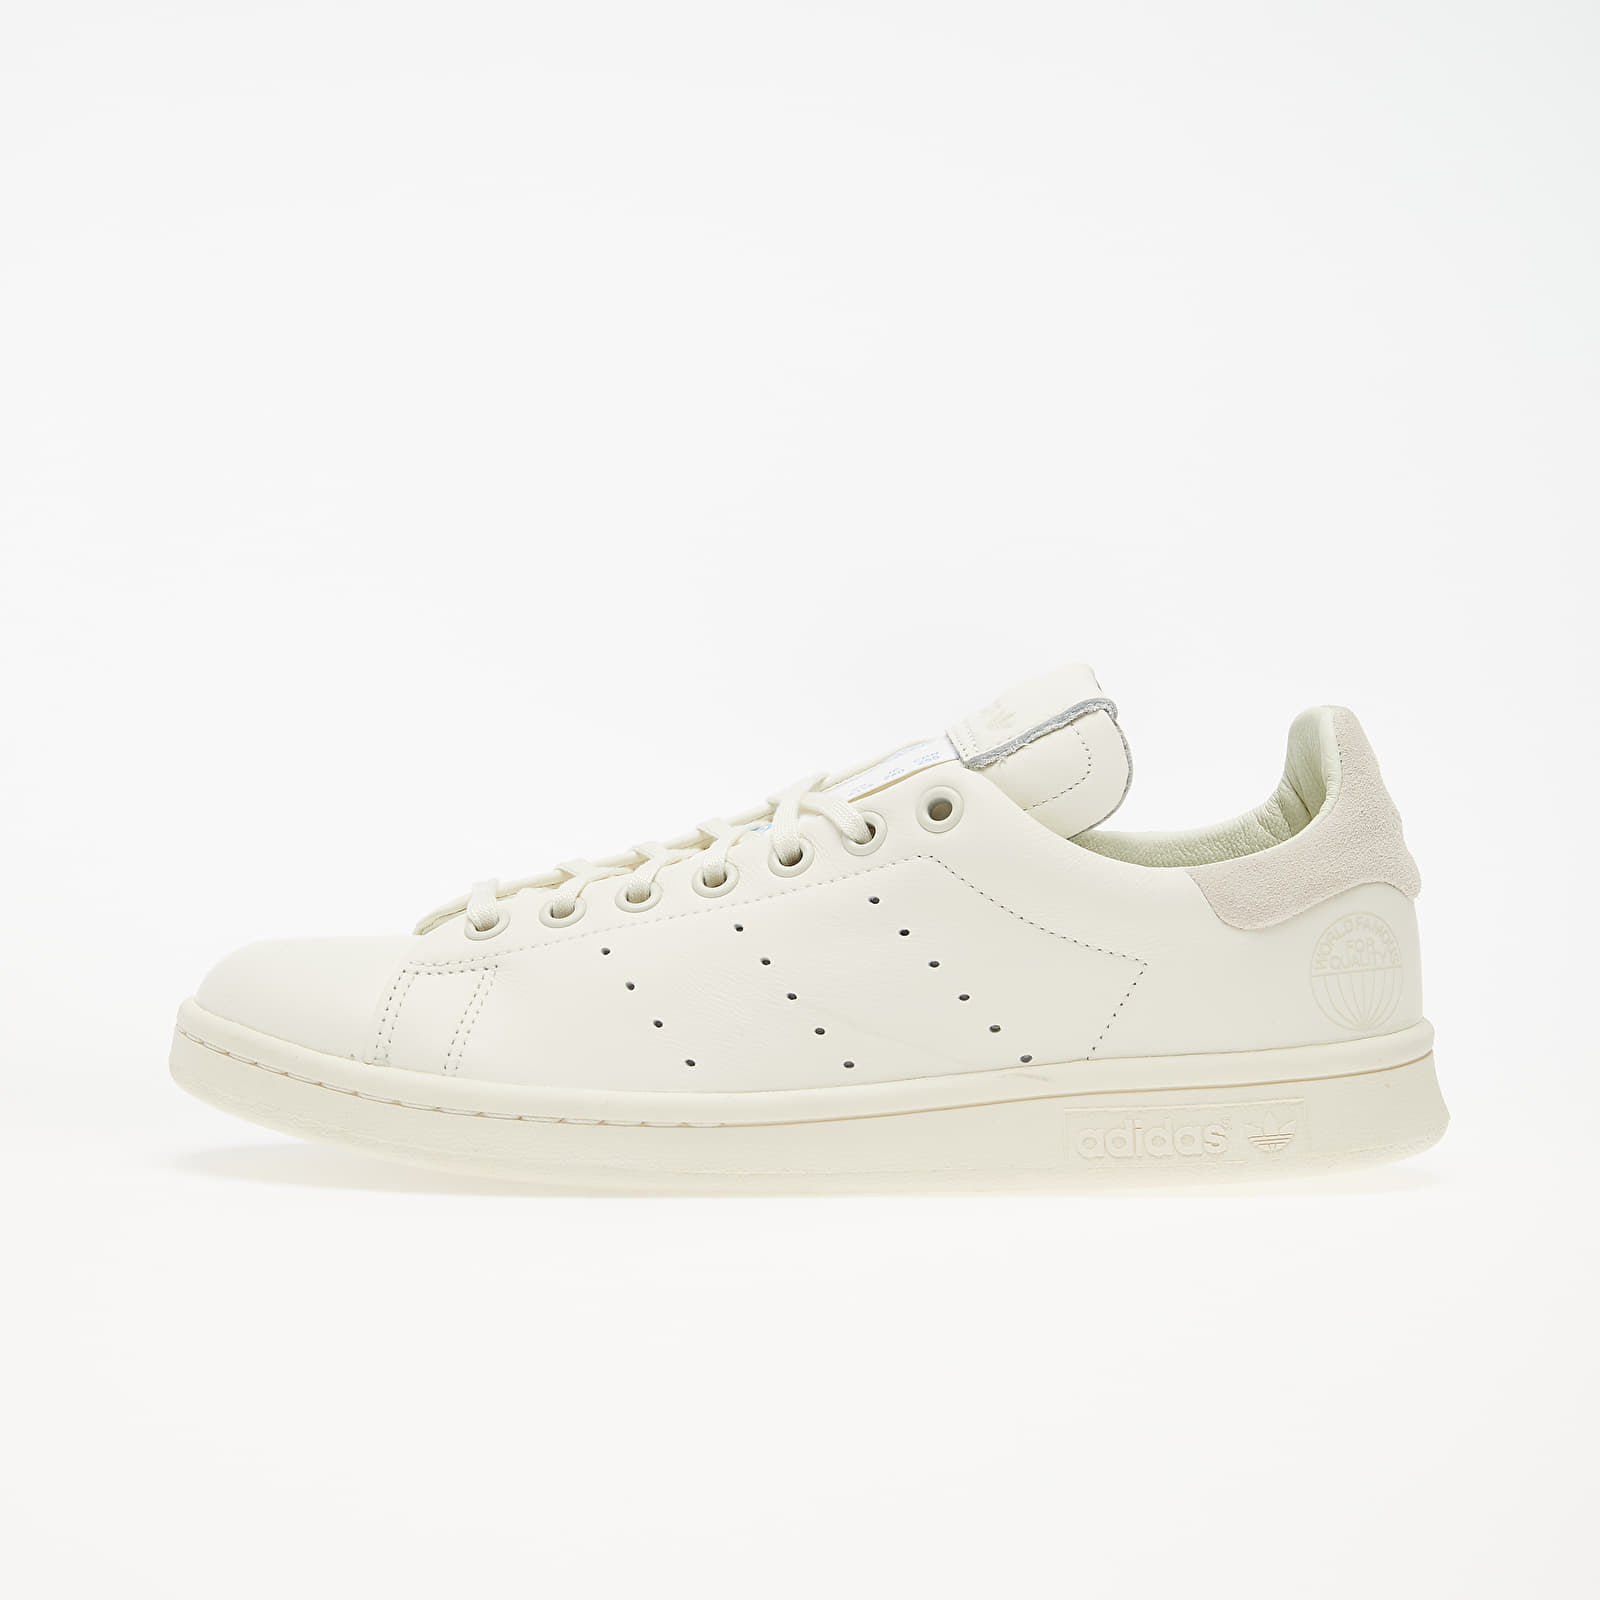 Men's shoes adidas Stan Smith Recon Off White/ Off White/ Off White